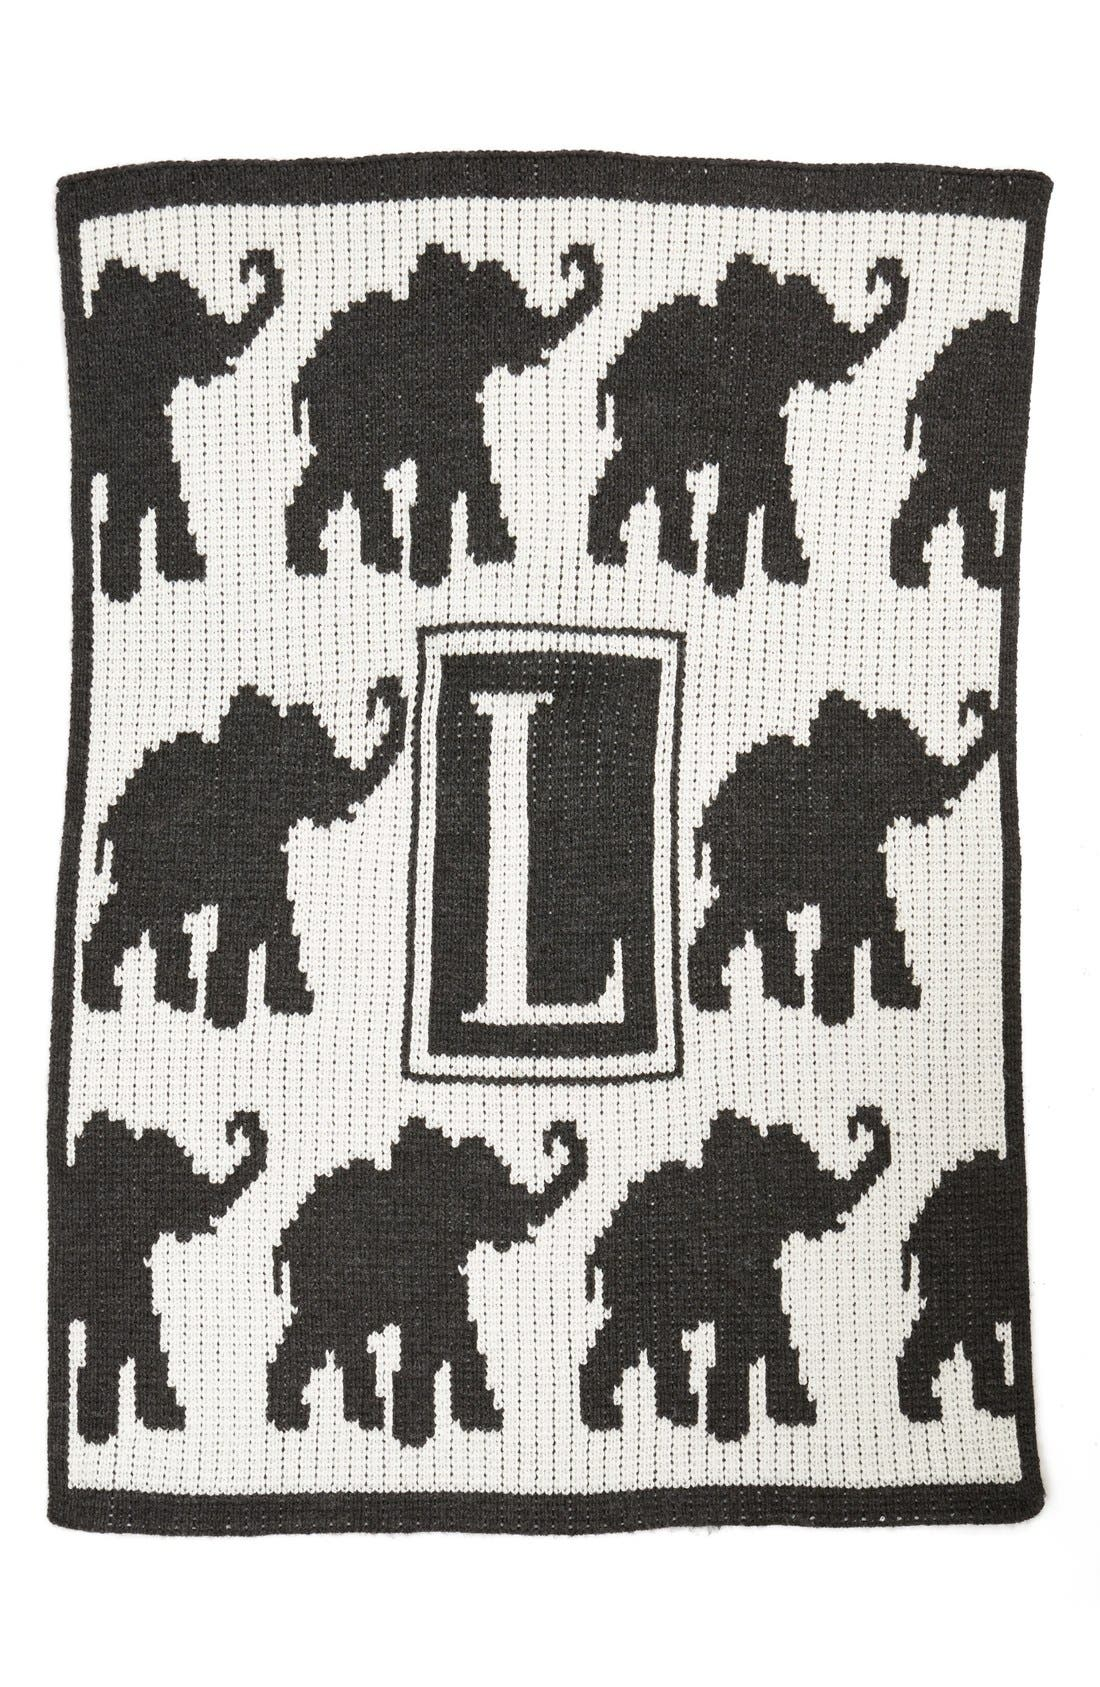 Main Image - Butterscotch Blankees 'Walking Elephants' Personalized Crib Blanket